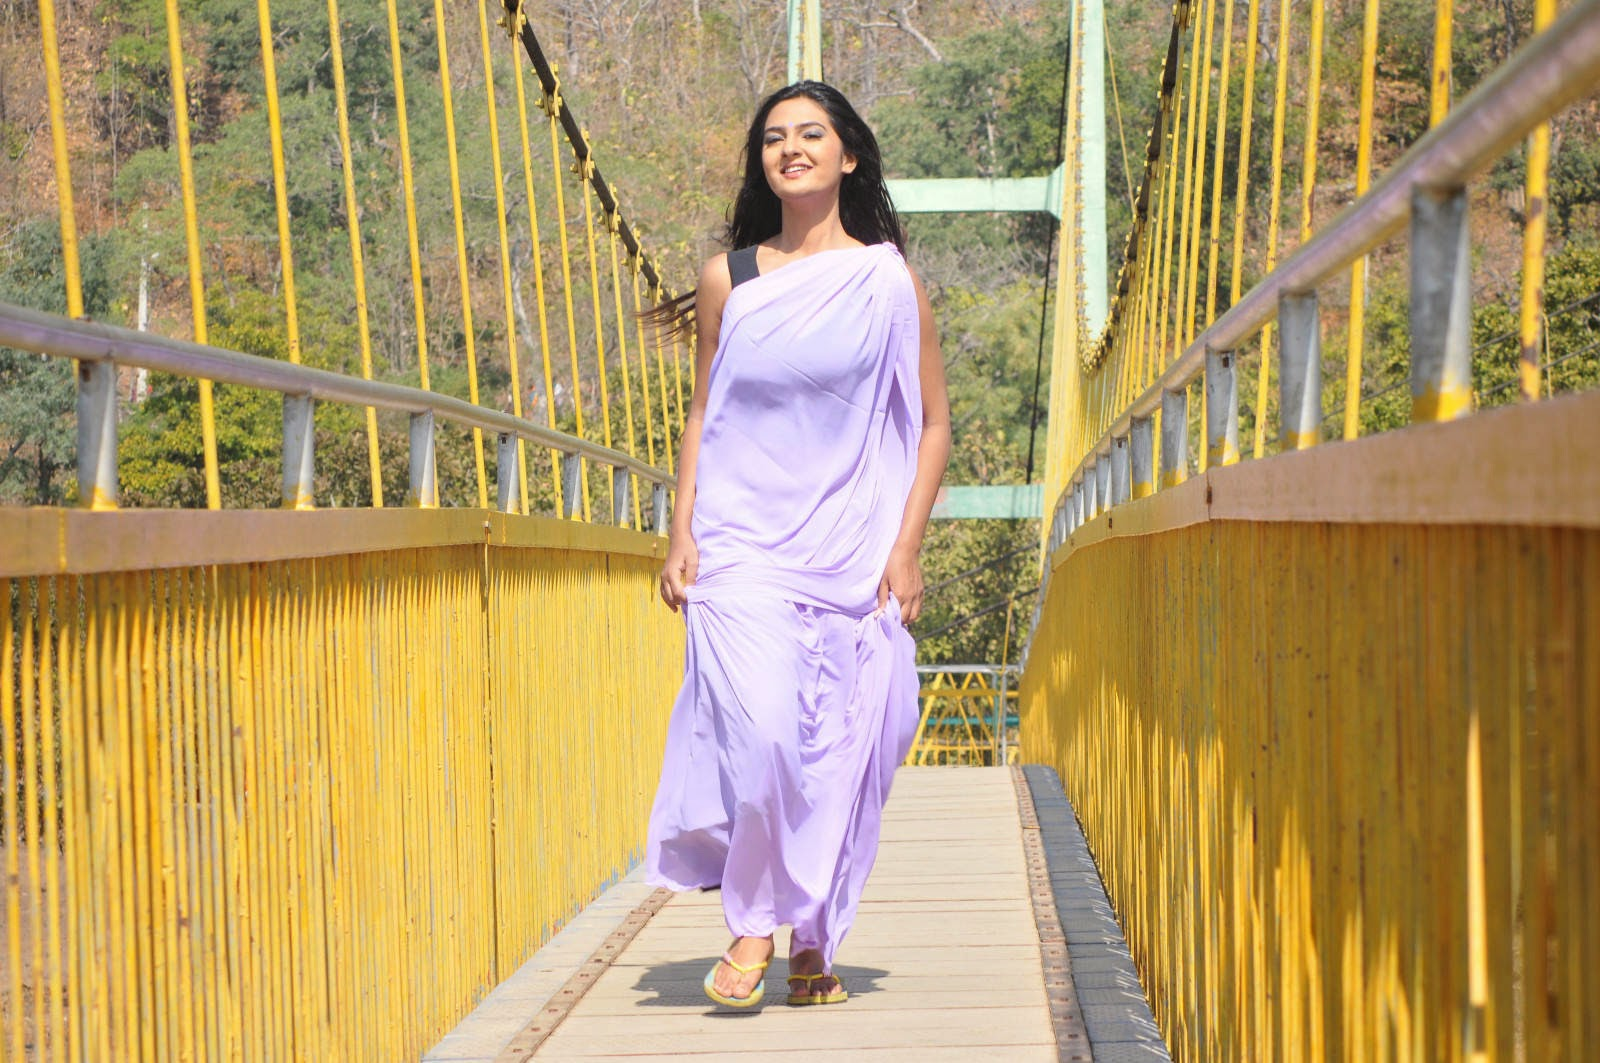 Neha Deshpande Pics in Violet Saree From The Bells Movie, Neha Deshpande Sare HD Wallpapers from The Bells Movie